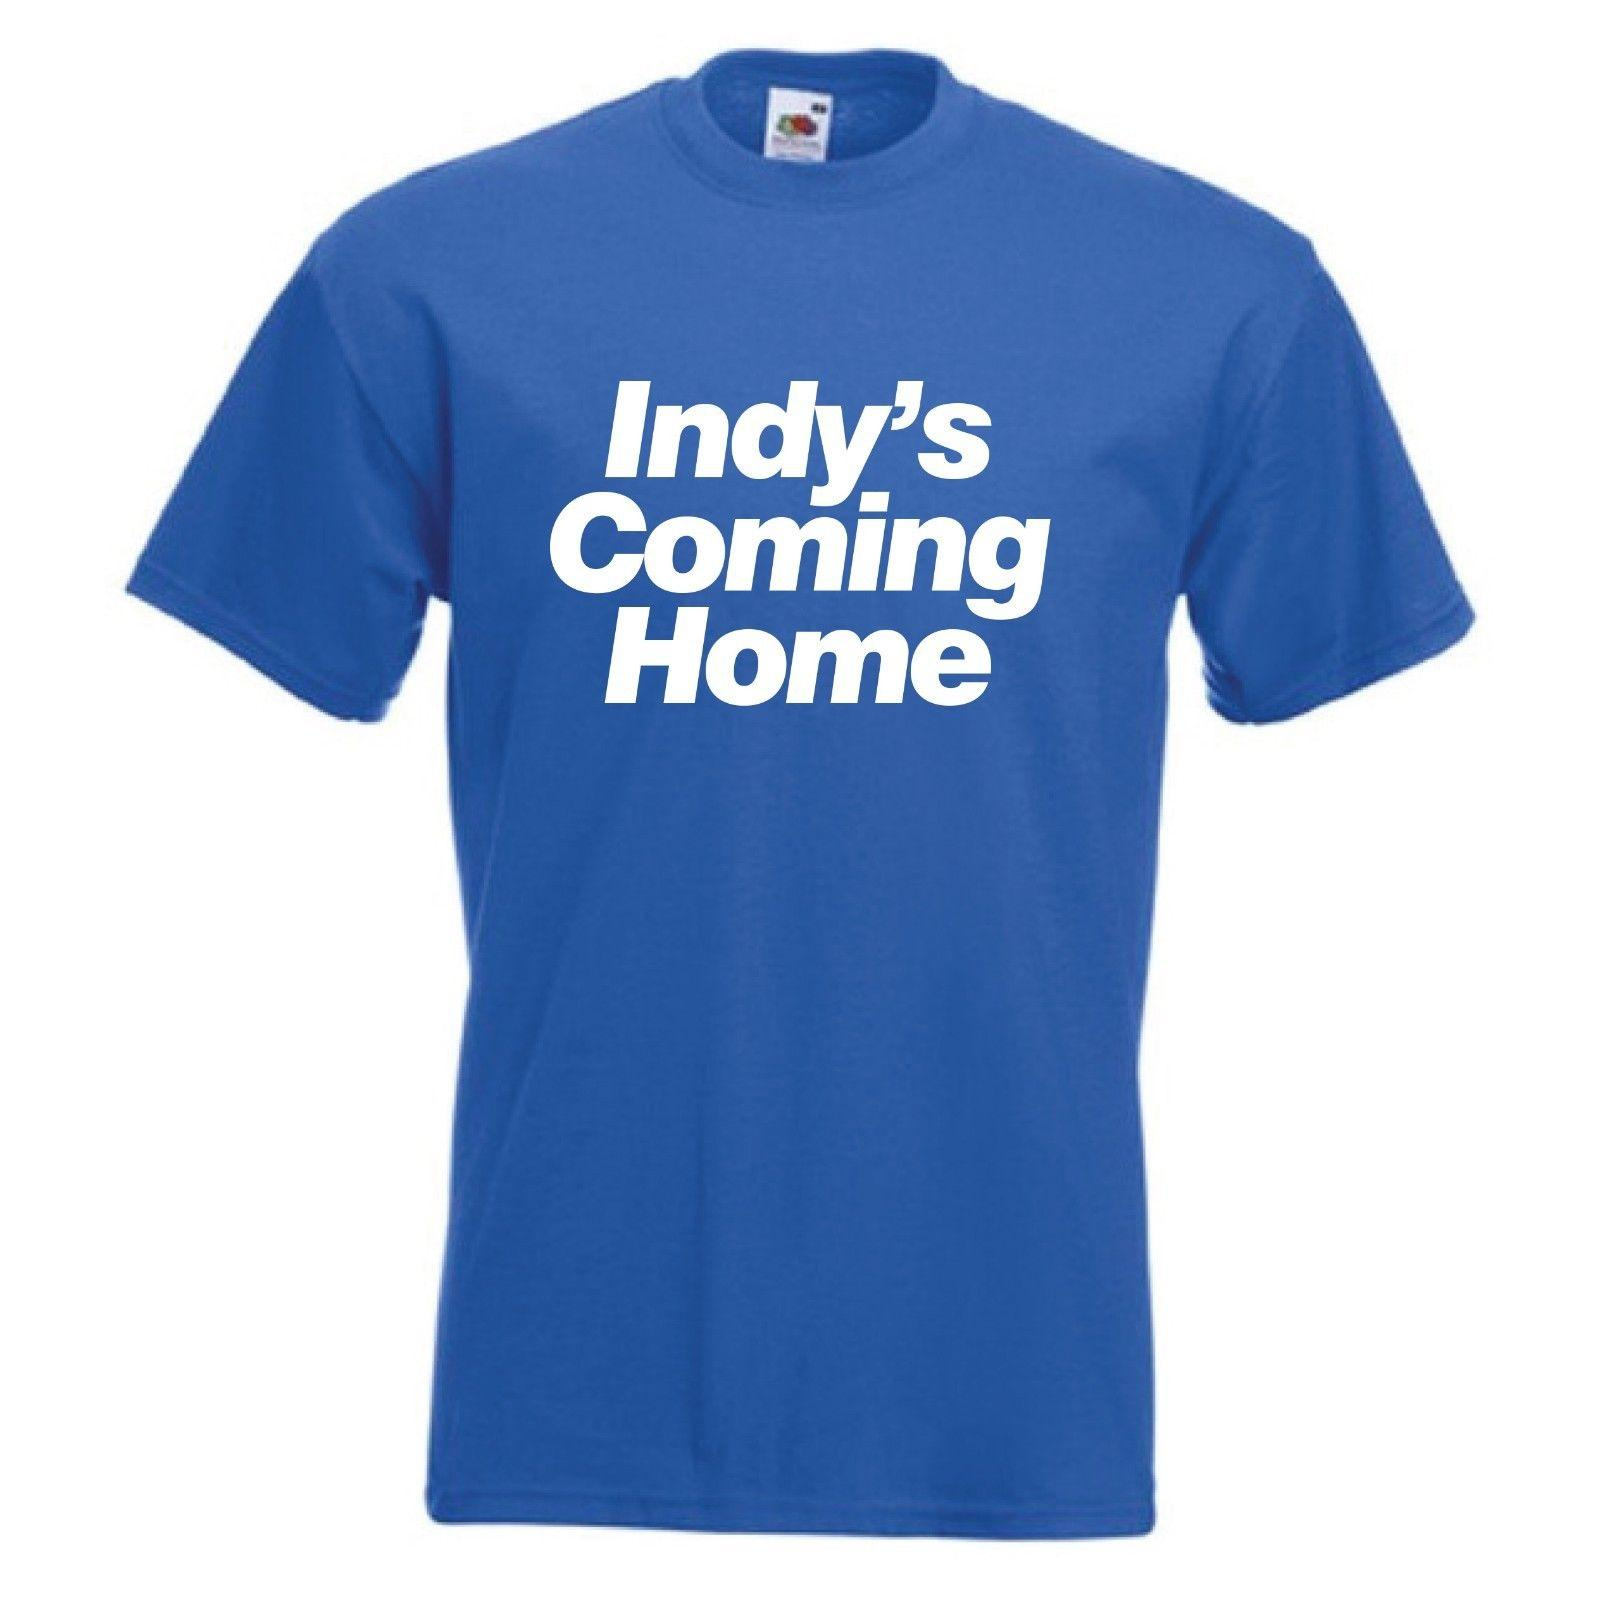 Indy's Coming Home T-Shirt - Scottish SNP Independence Nation Scotland YesFunny free shipping Unisex Casual Tshirt